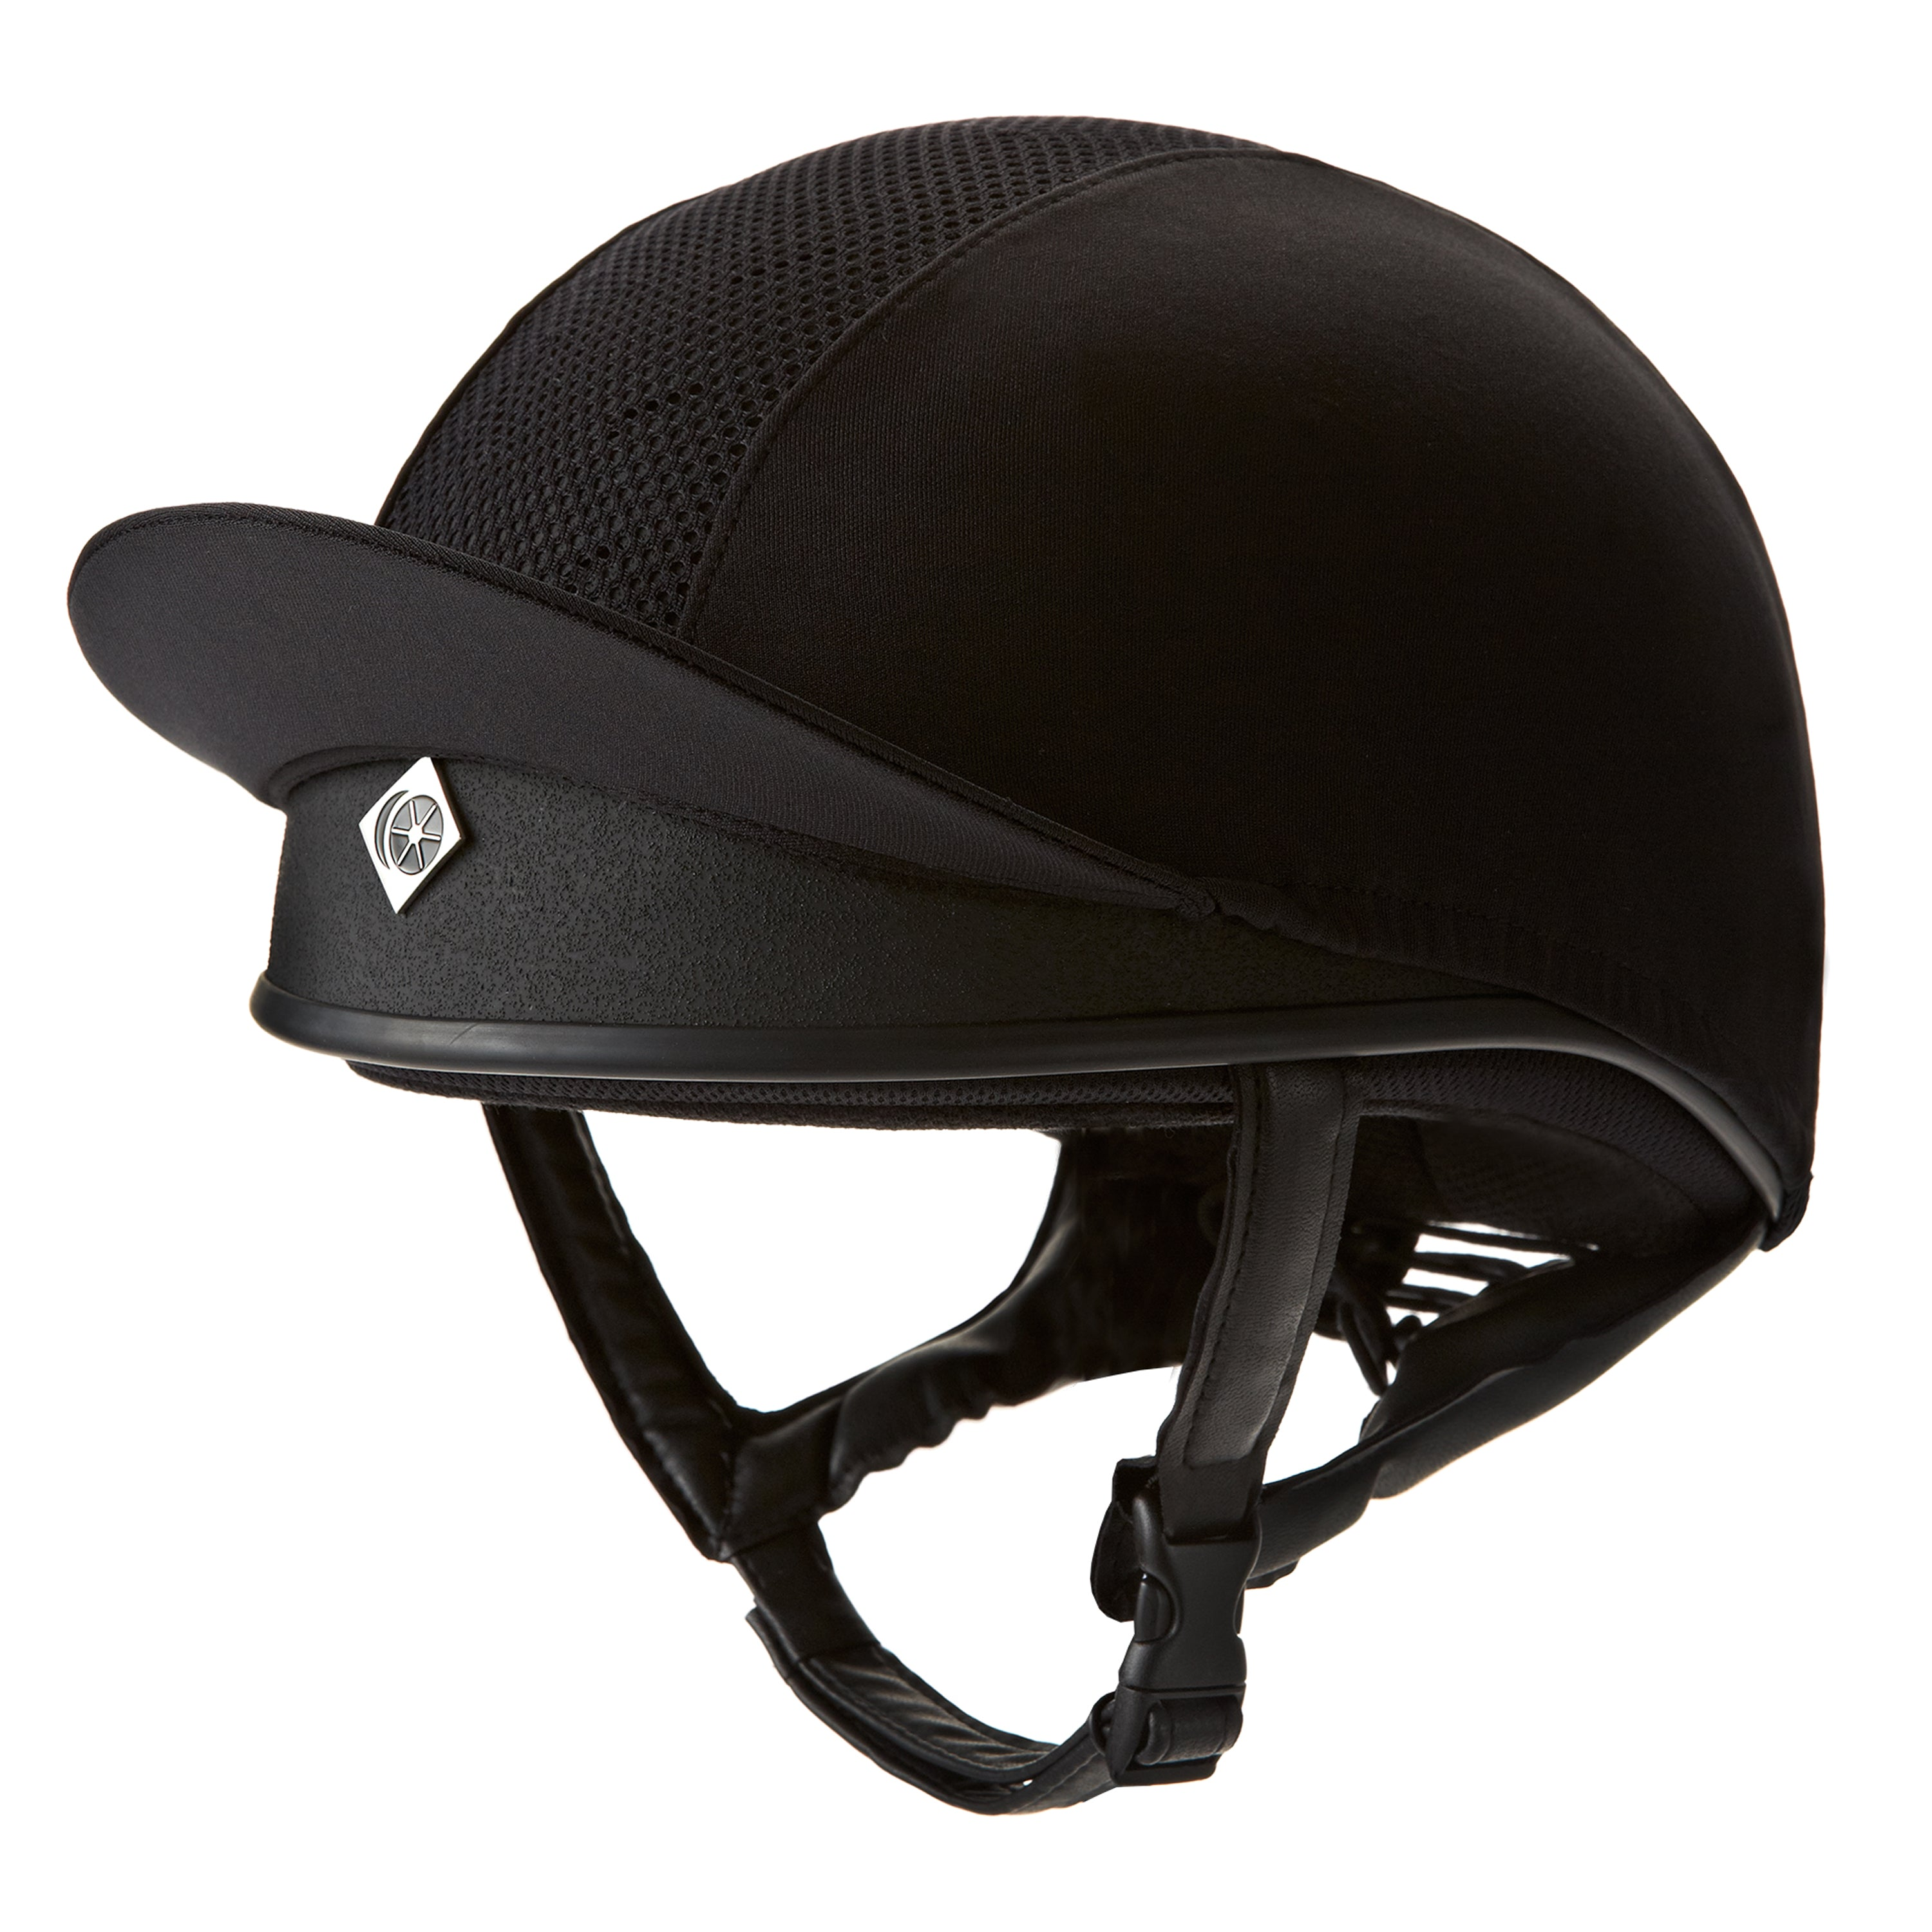 Fair Price Equestrian | Charles Owen Pro ll Plus Regular Fit Sizes Jockey Skull